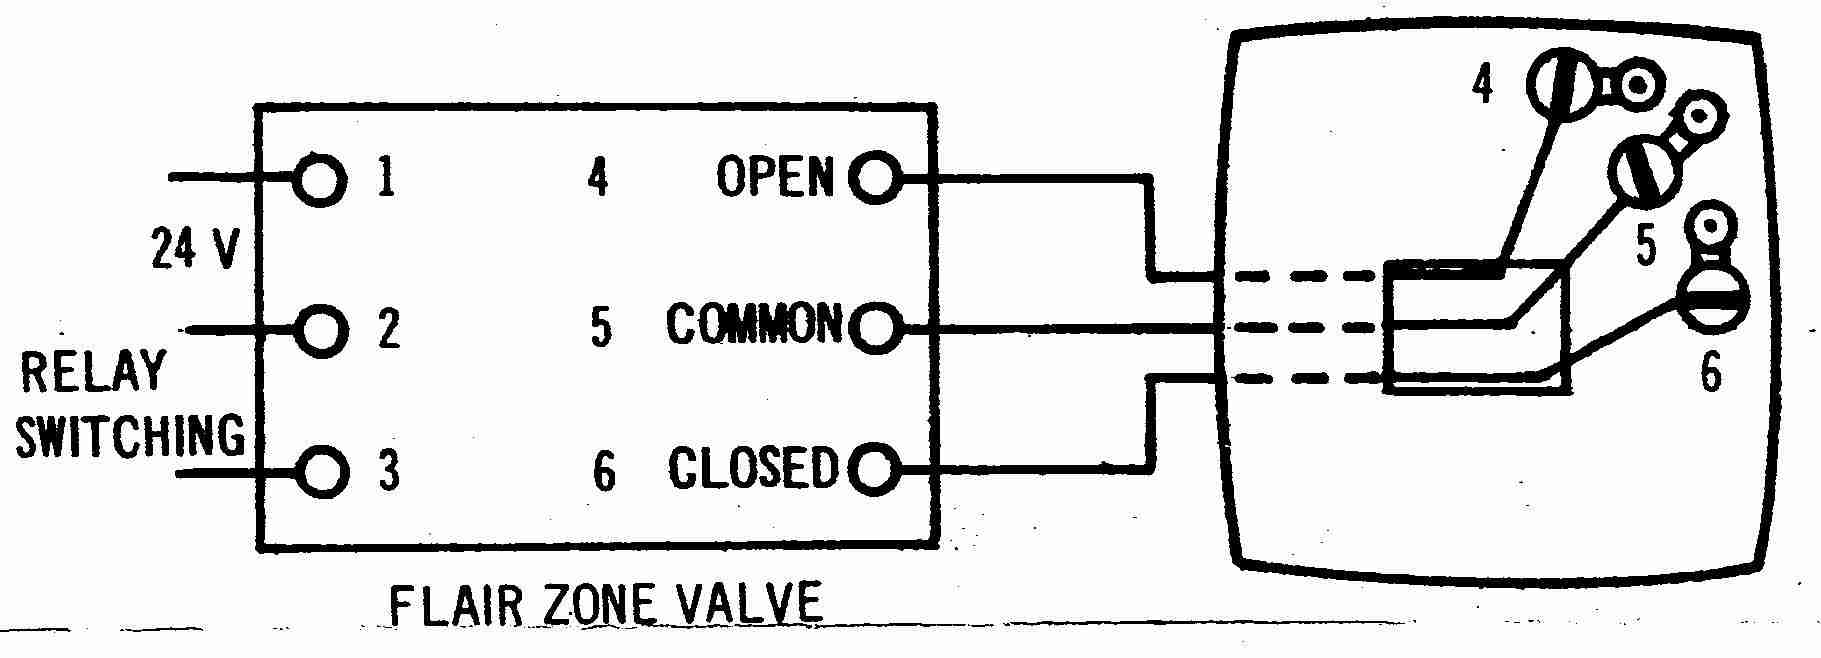 zone valve wiring installation \u0026 instructions guide to heating Taco 571 Wiring Diagram For flair 3 wire thermostat wiring controlling a zone valve